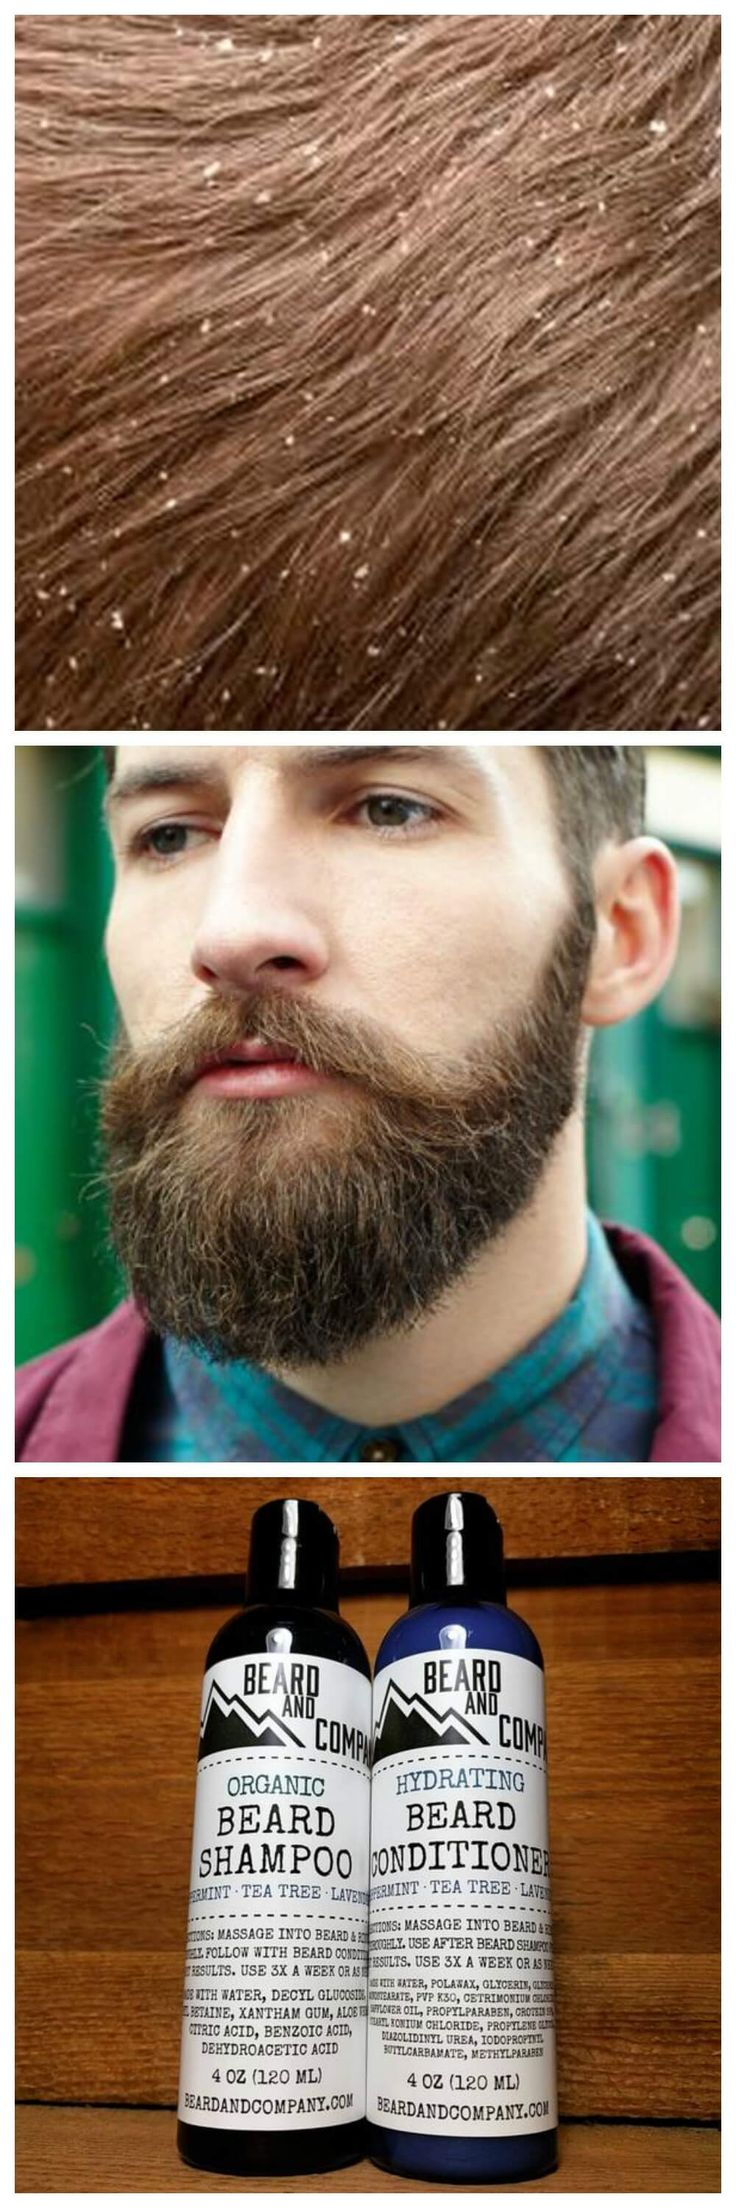 You Ve Let Your Beard Grow Wildly And Wonder Why It Itches E On Man Once Grown That Bad Boy To A Length Want S Time Get Serious